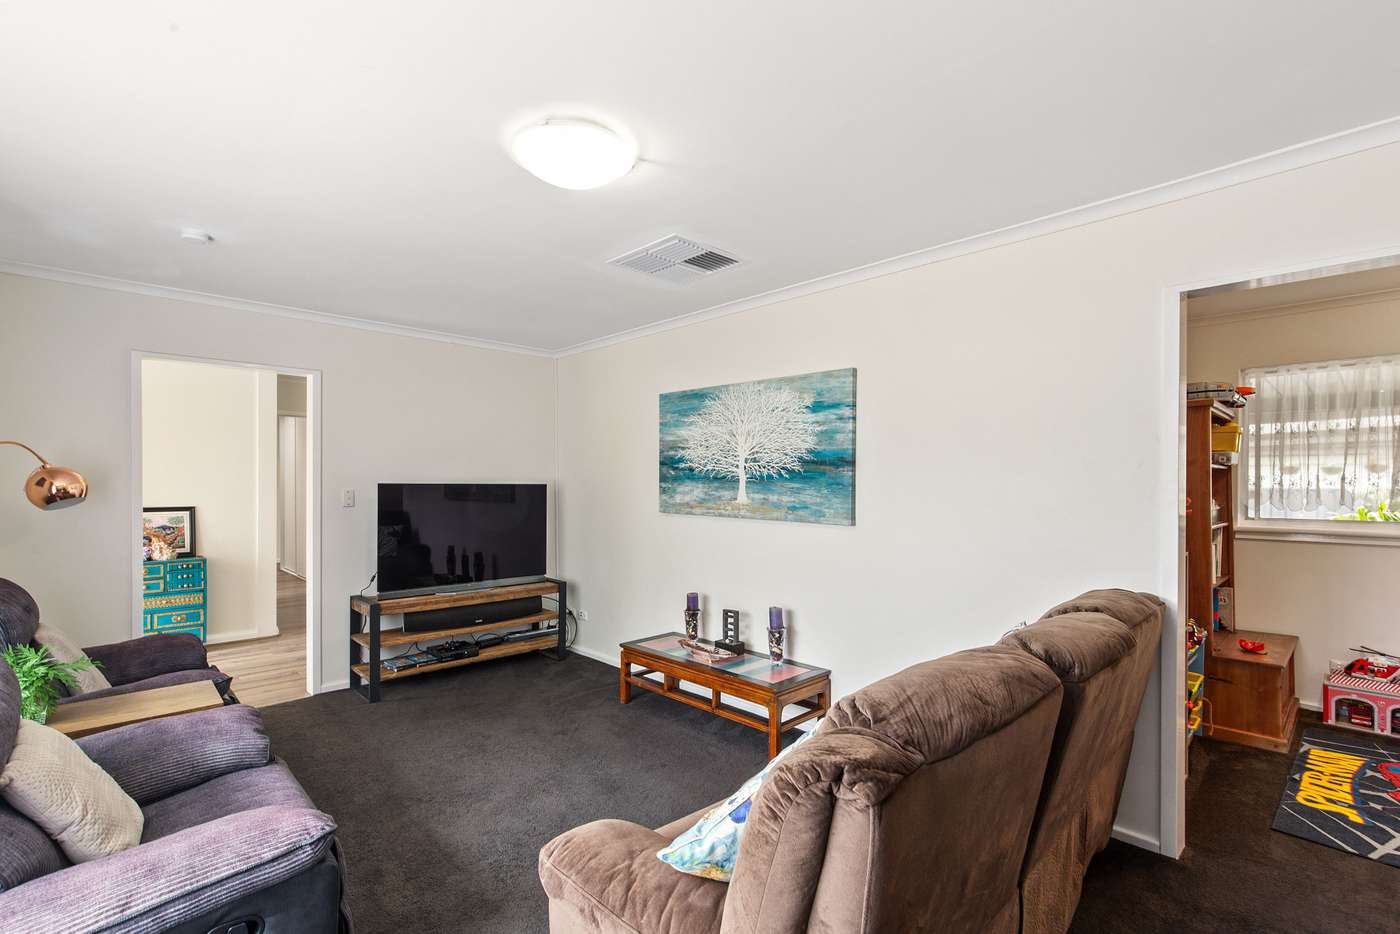 Fifth view of Homely house listing, 2 Vincent Crescent, Morphett Vale SA 5162